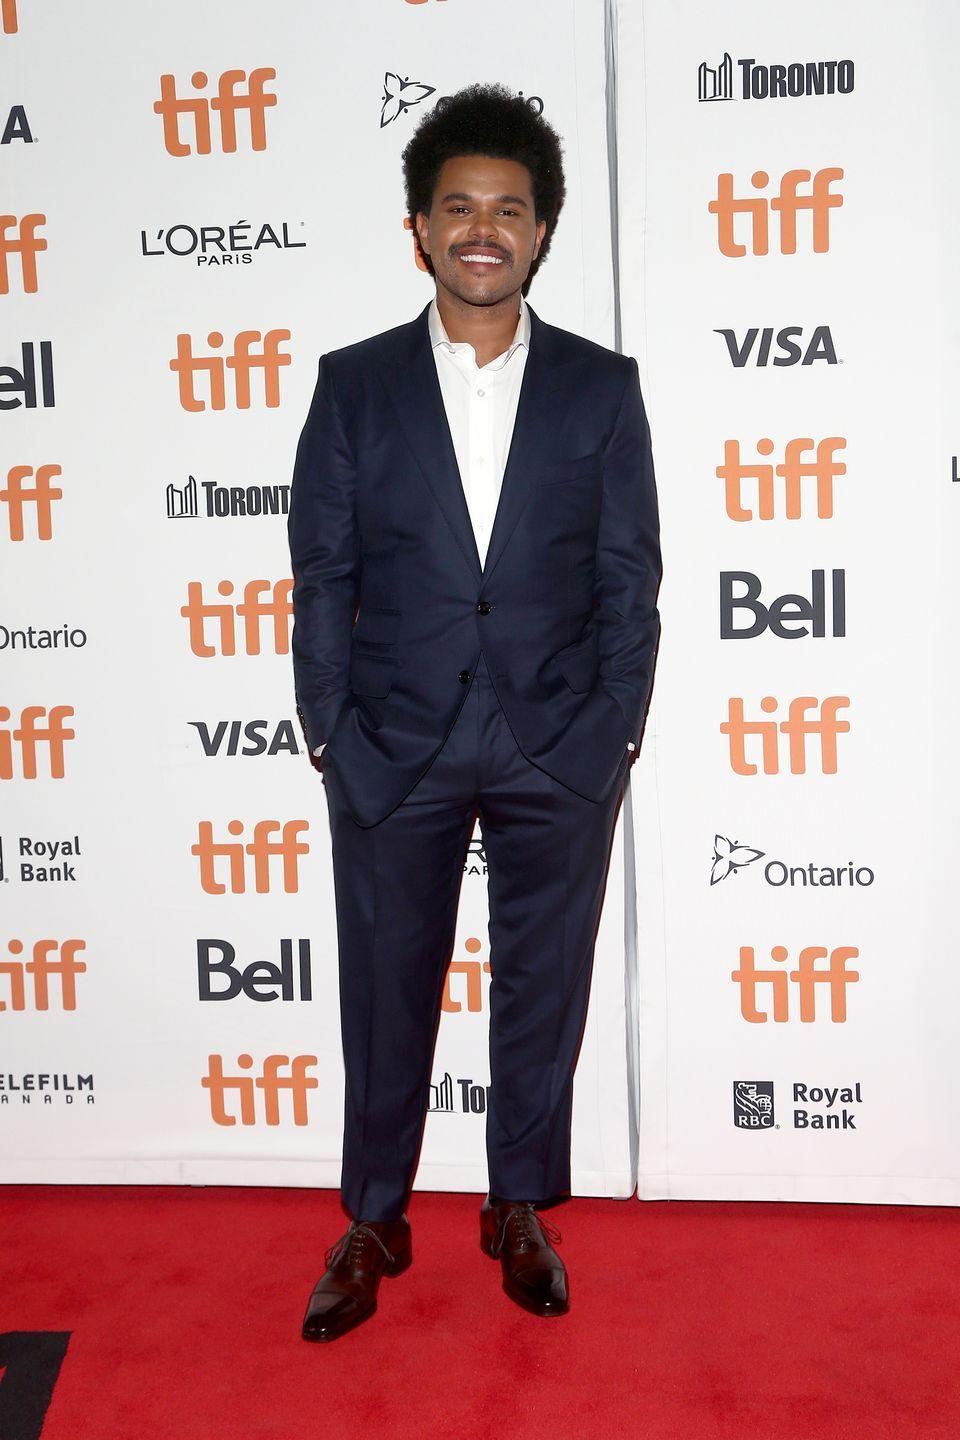 <p>Of course, no man can wear one color all the damn time. (Even Johnny Cash occasionally ventured out of the darkness to throw on a crisp white shirt.) But when Tesfaye strays from his typical all-black fits, he still keeps it largely monochromatic, as he did at the TIFF<em> Uncut Gems</em> premiere here. </p>